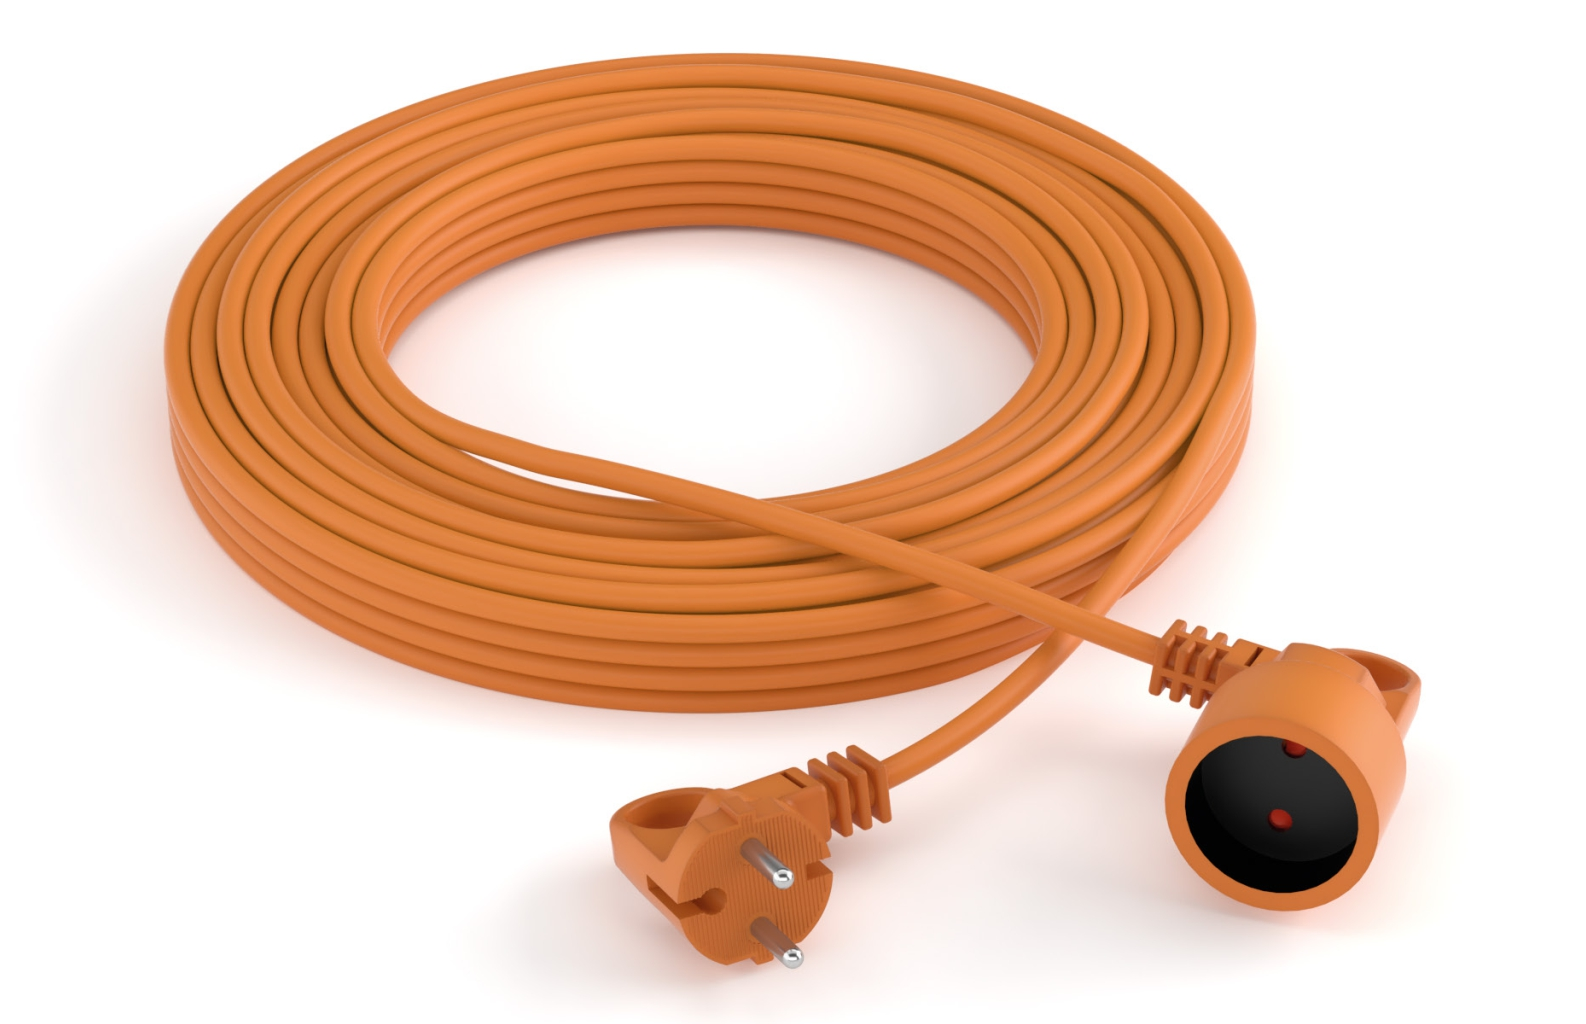 Garden extension cords